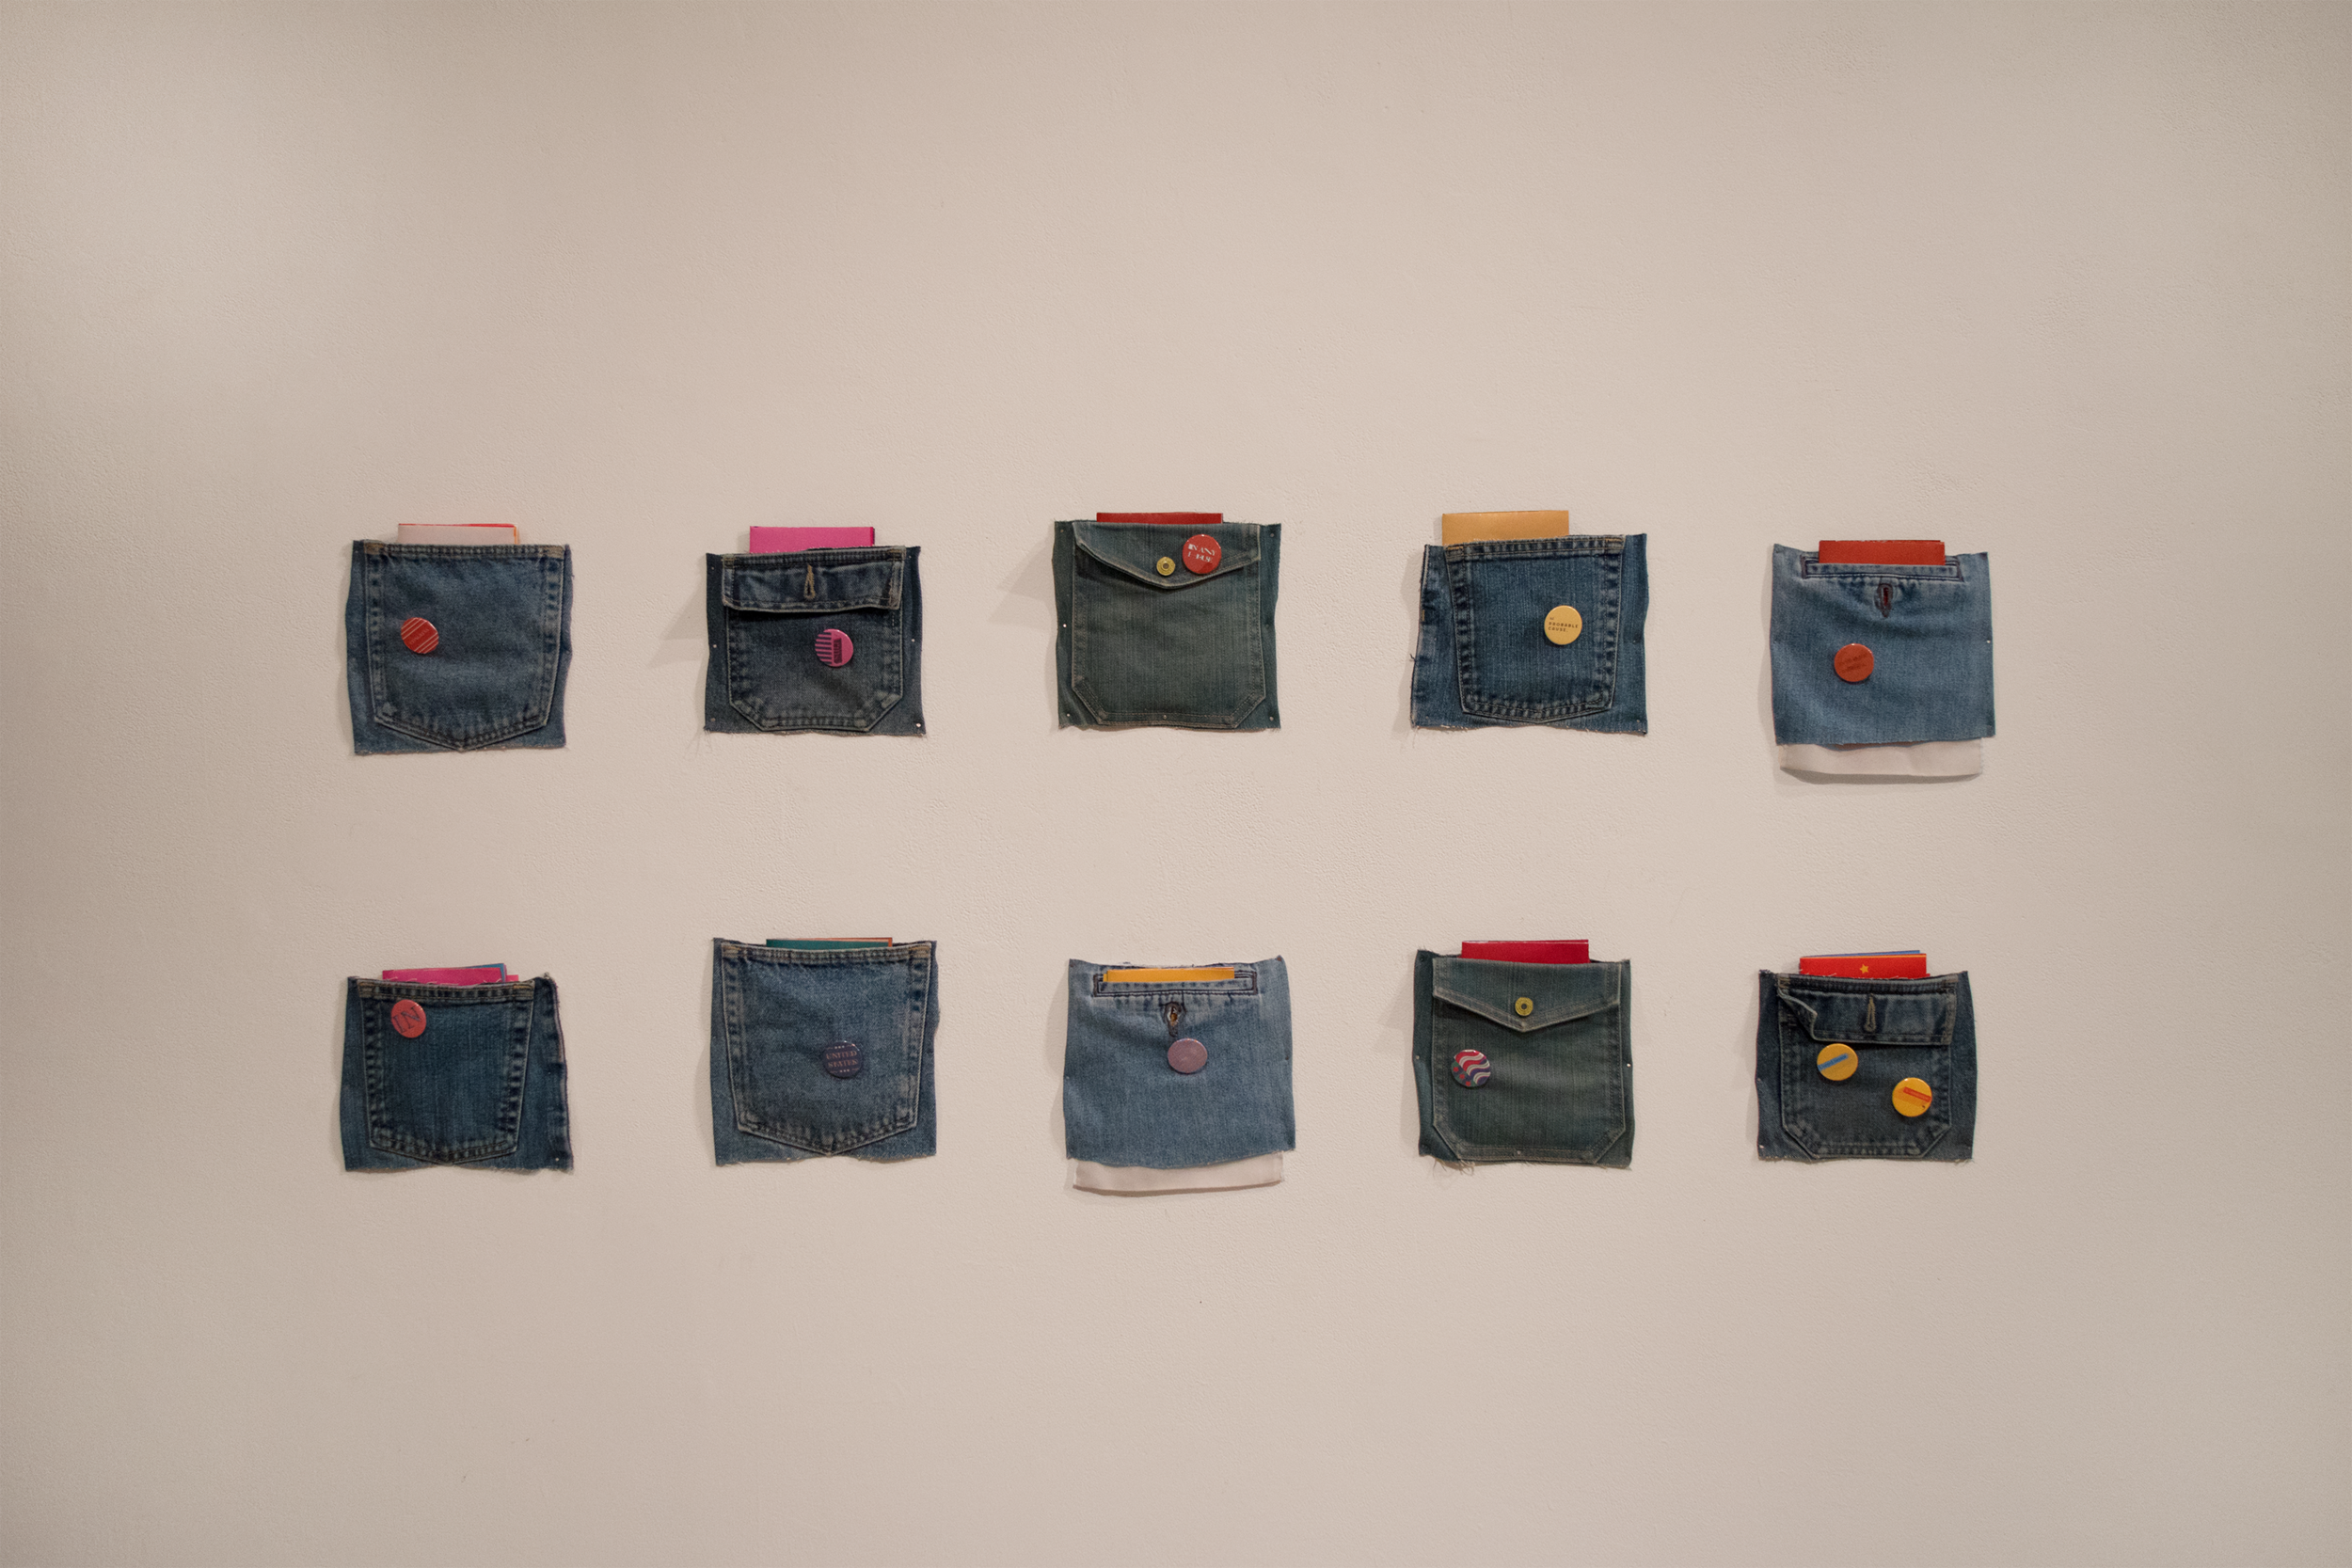 The zines were displayed in denim pockets, a nod to a quintessential United States fashion garment.